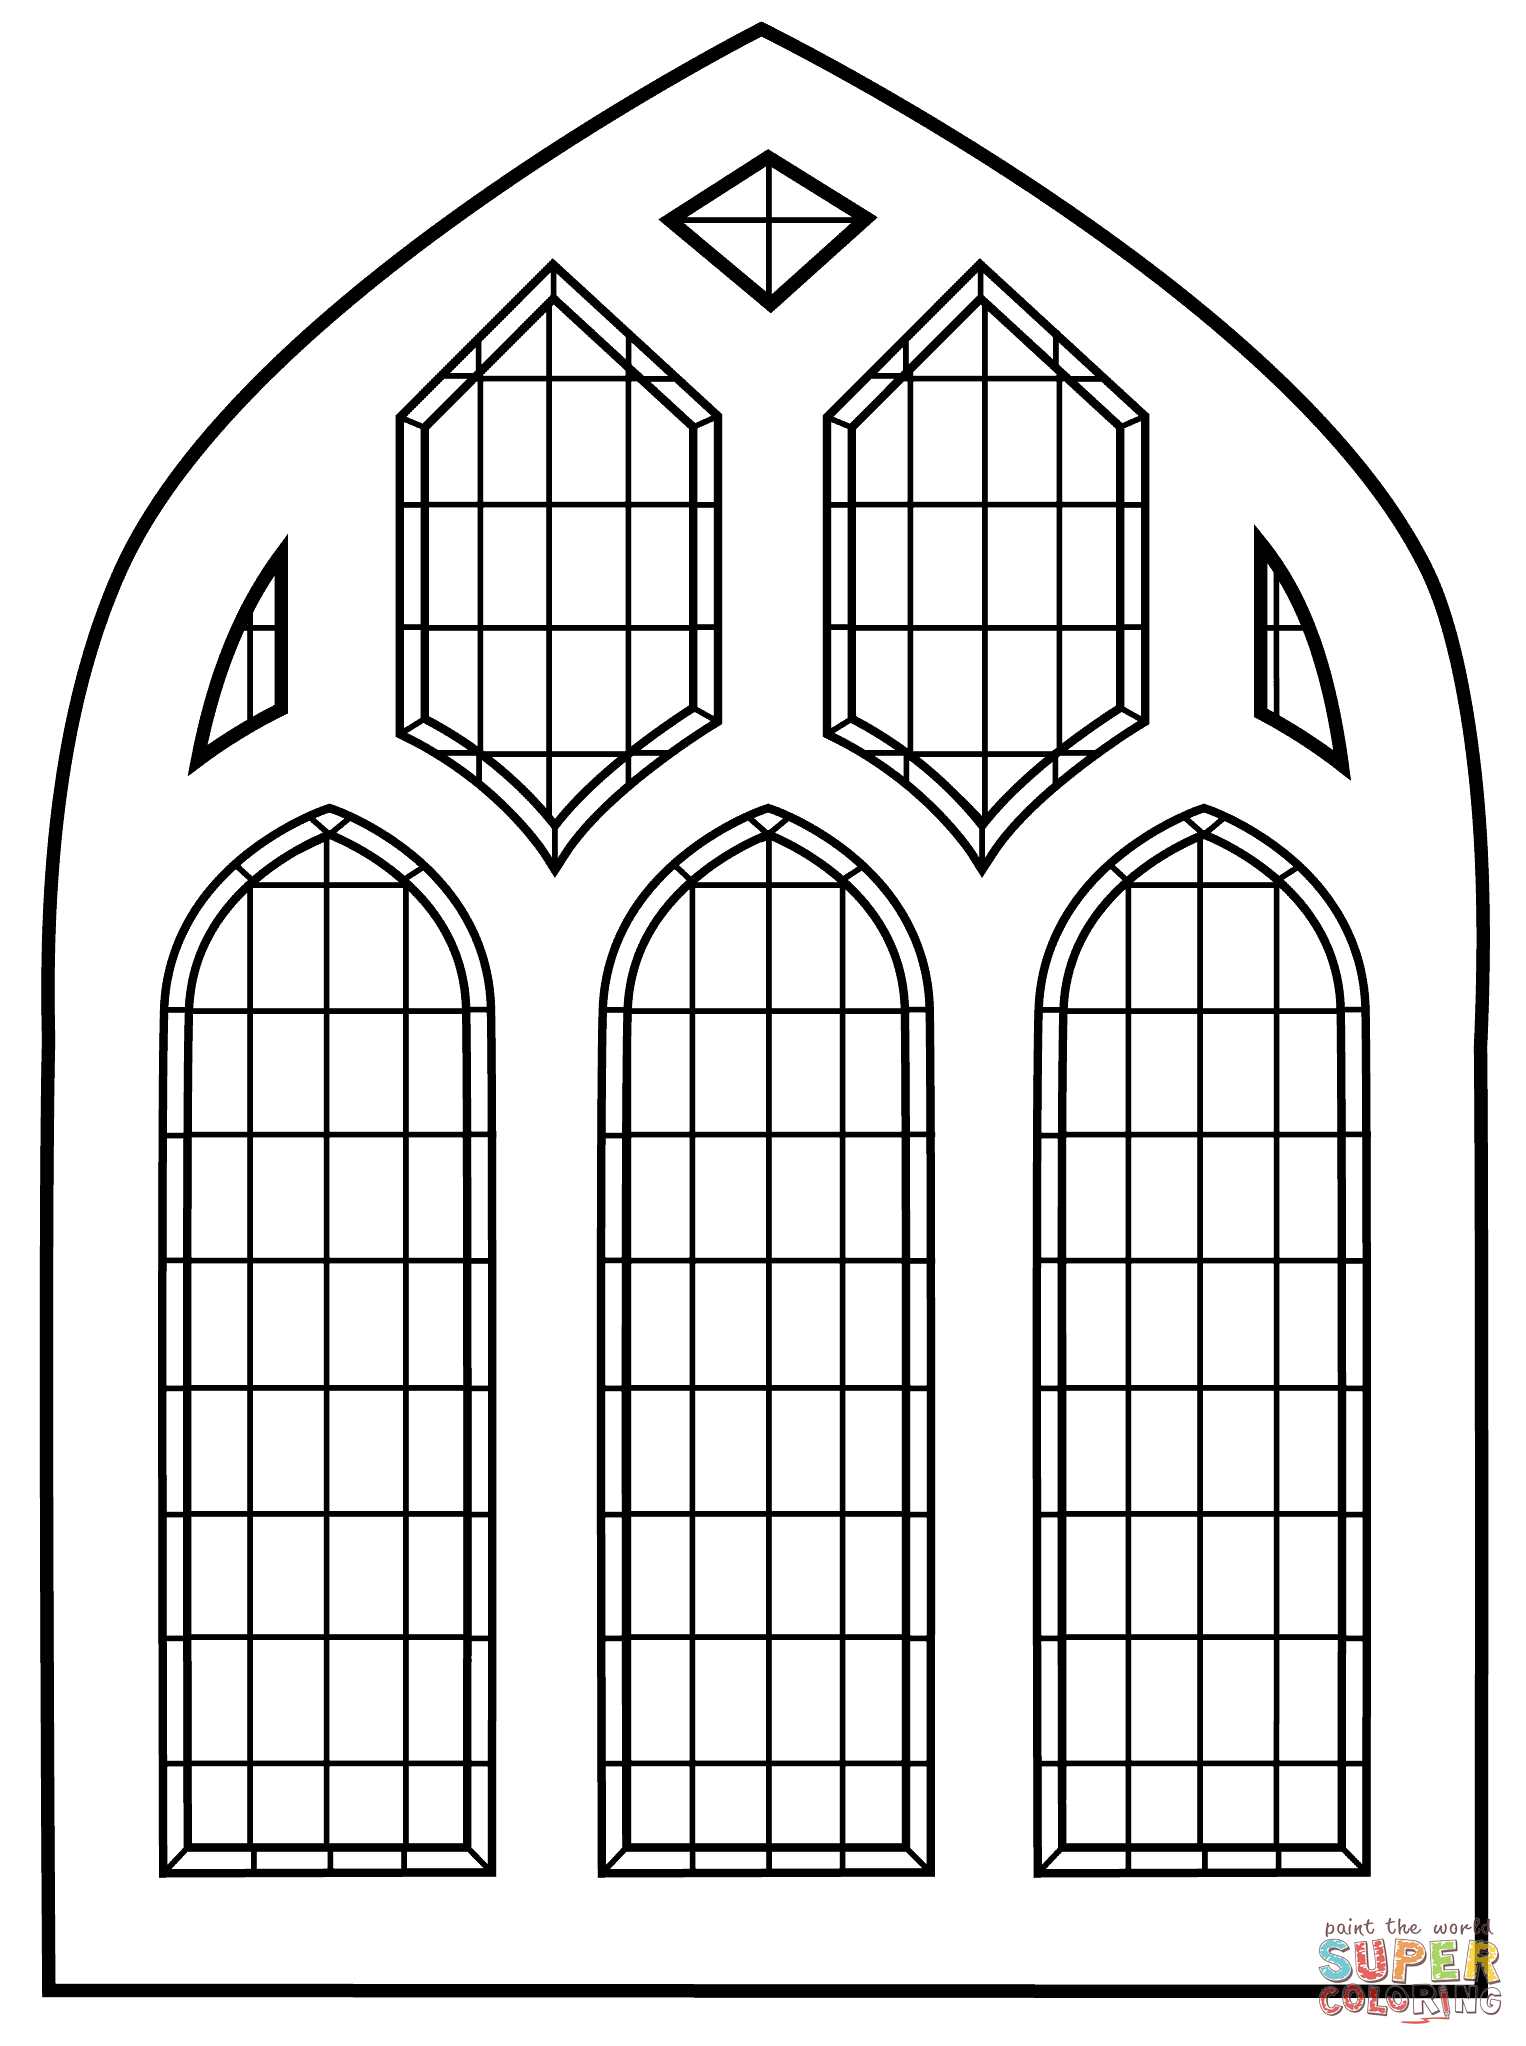 Image Result For Winter Window Pane Coloring Sheet Free Cross Coloring Page Free Printable Coloring Pages Colouring Pages